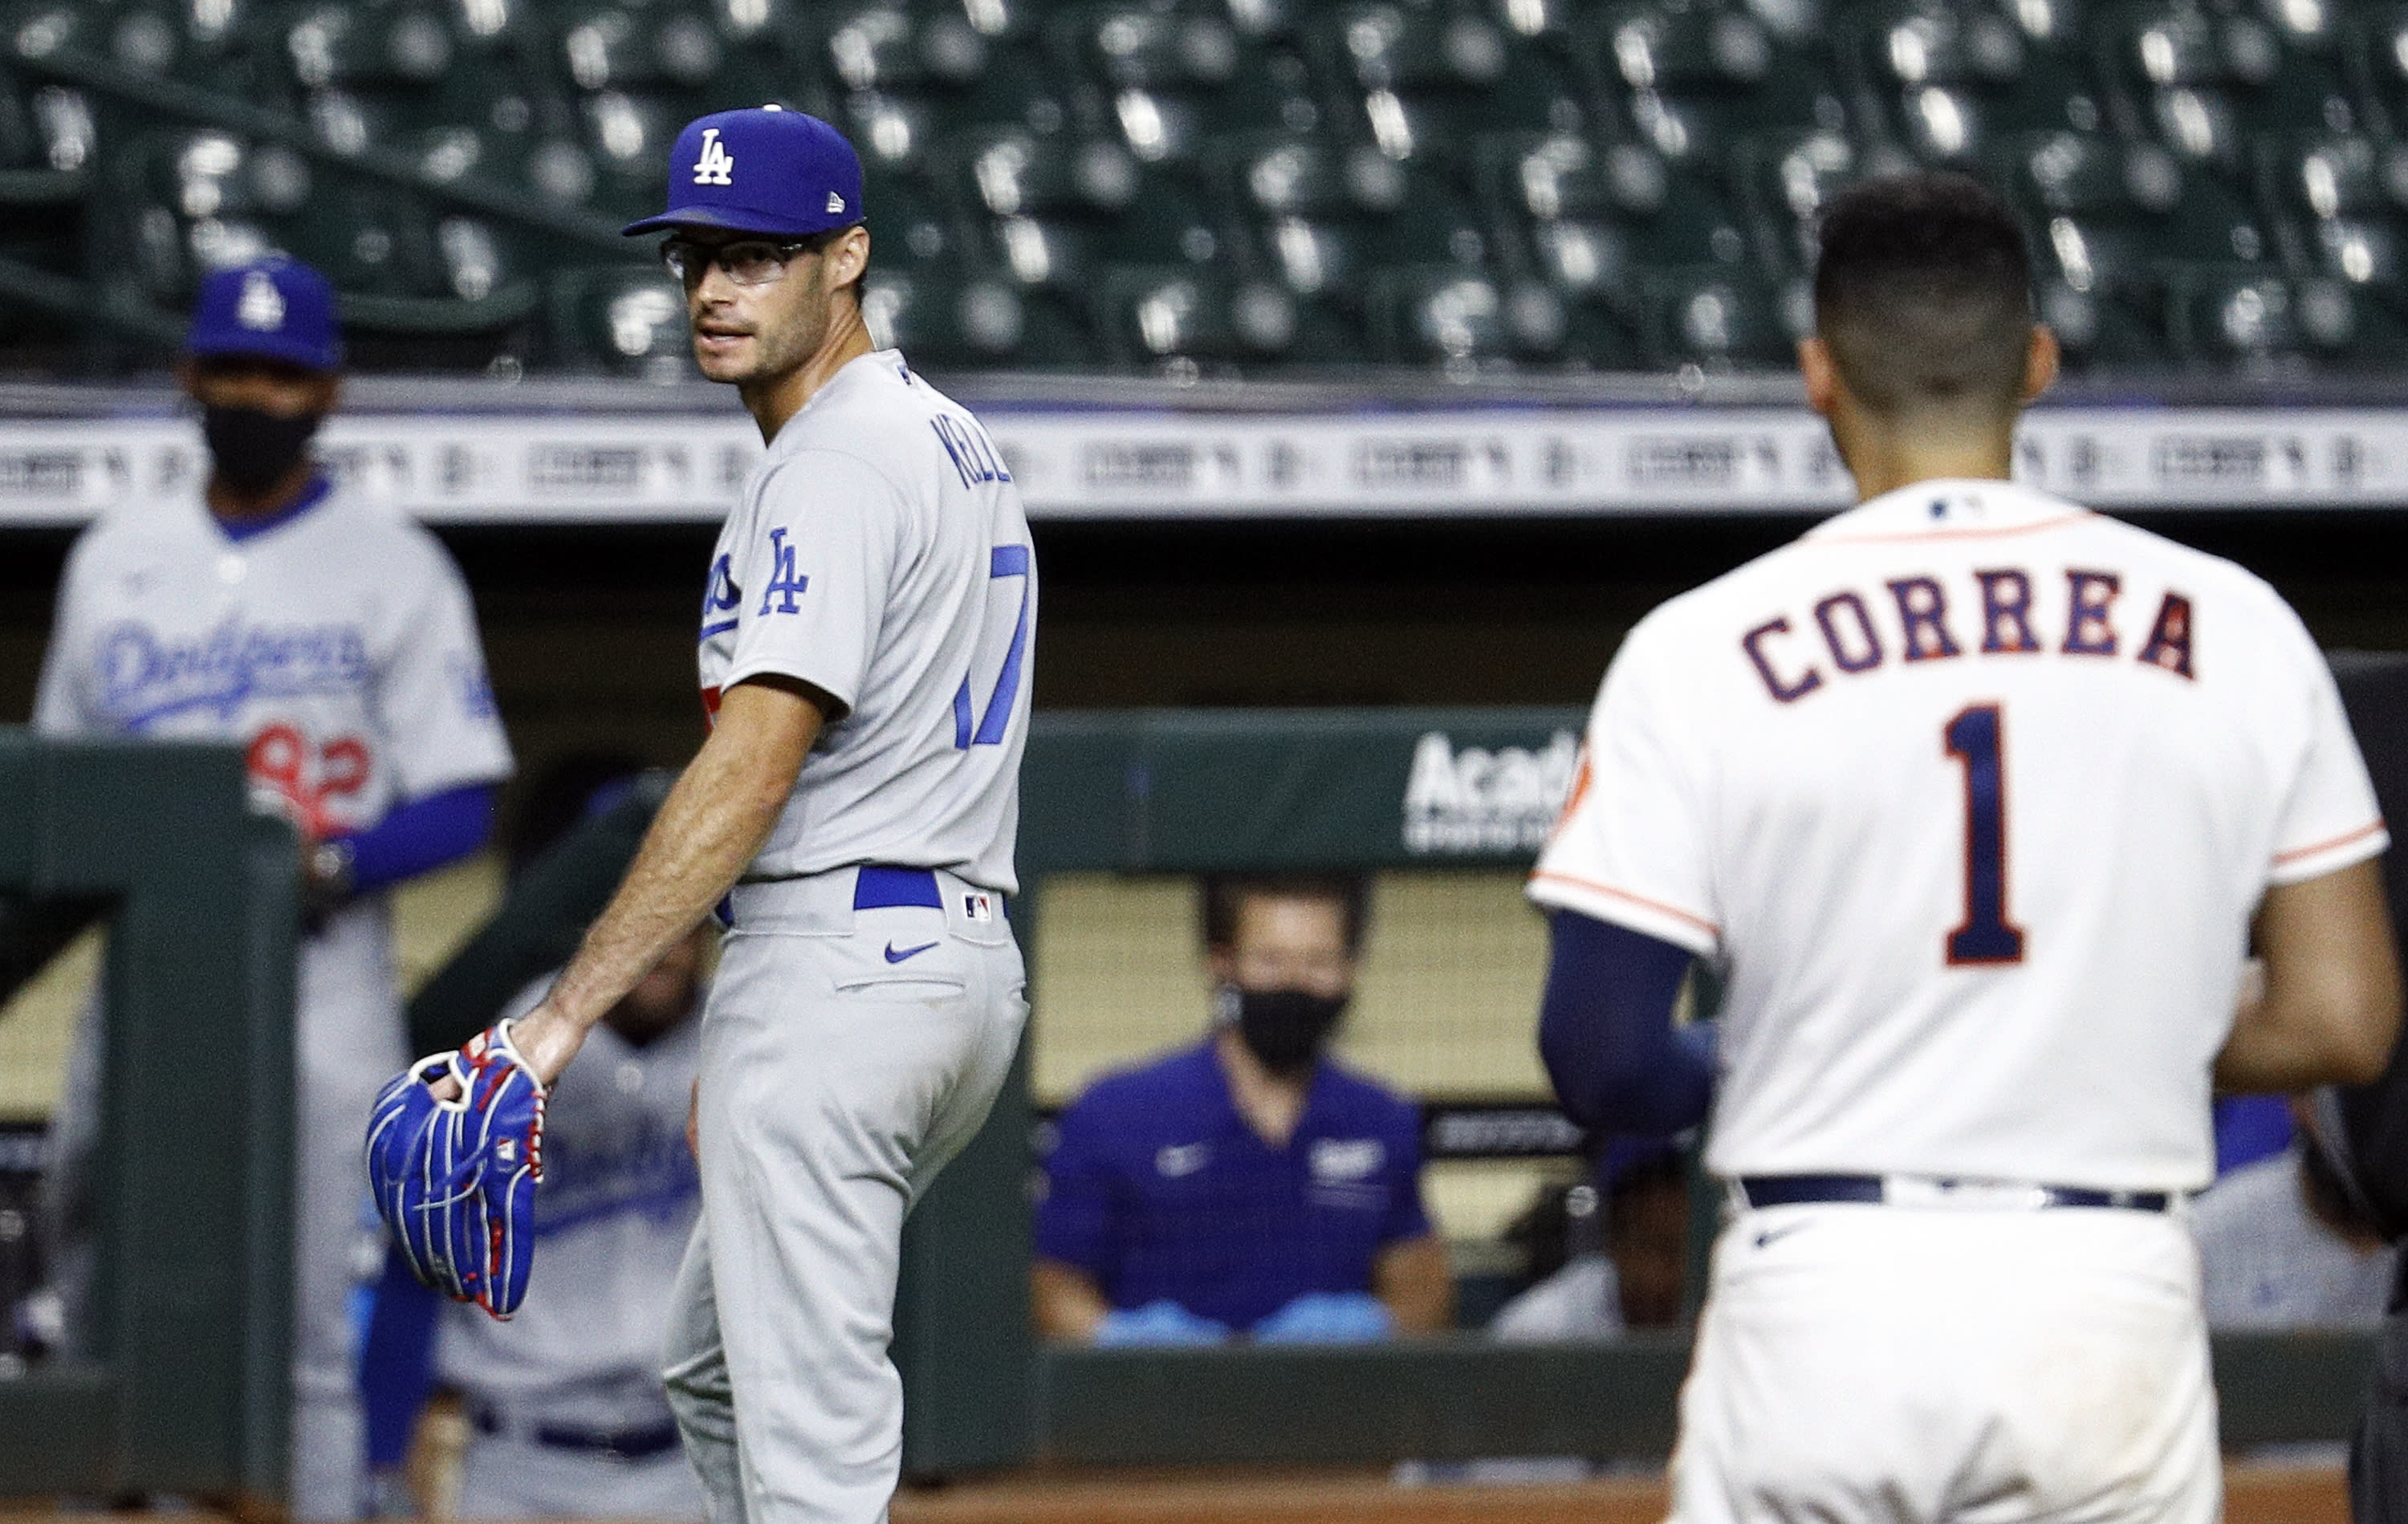 Joe Kelly unloads on 'snitching' Astros: 'Everyone knows they're cheaters'